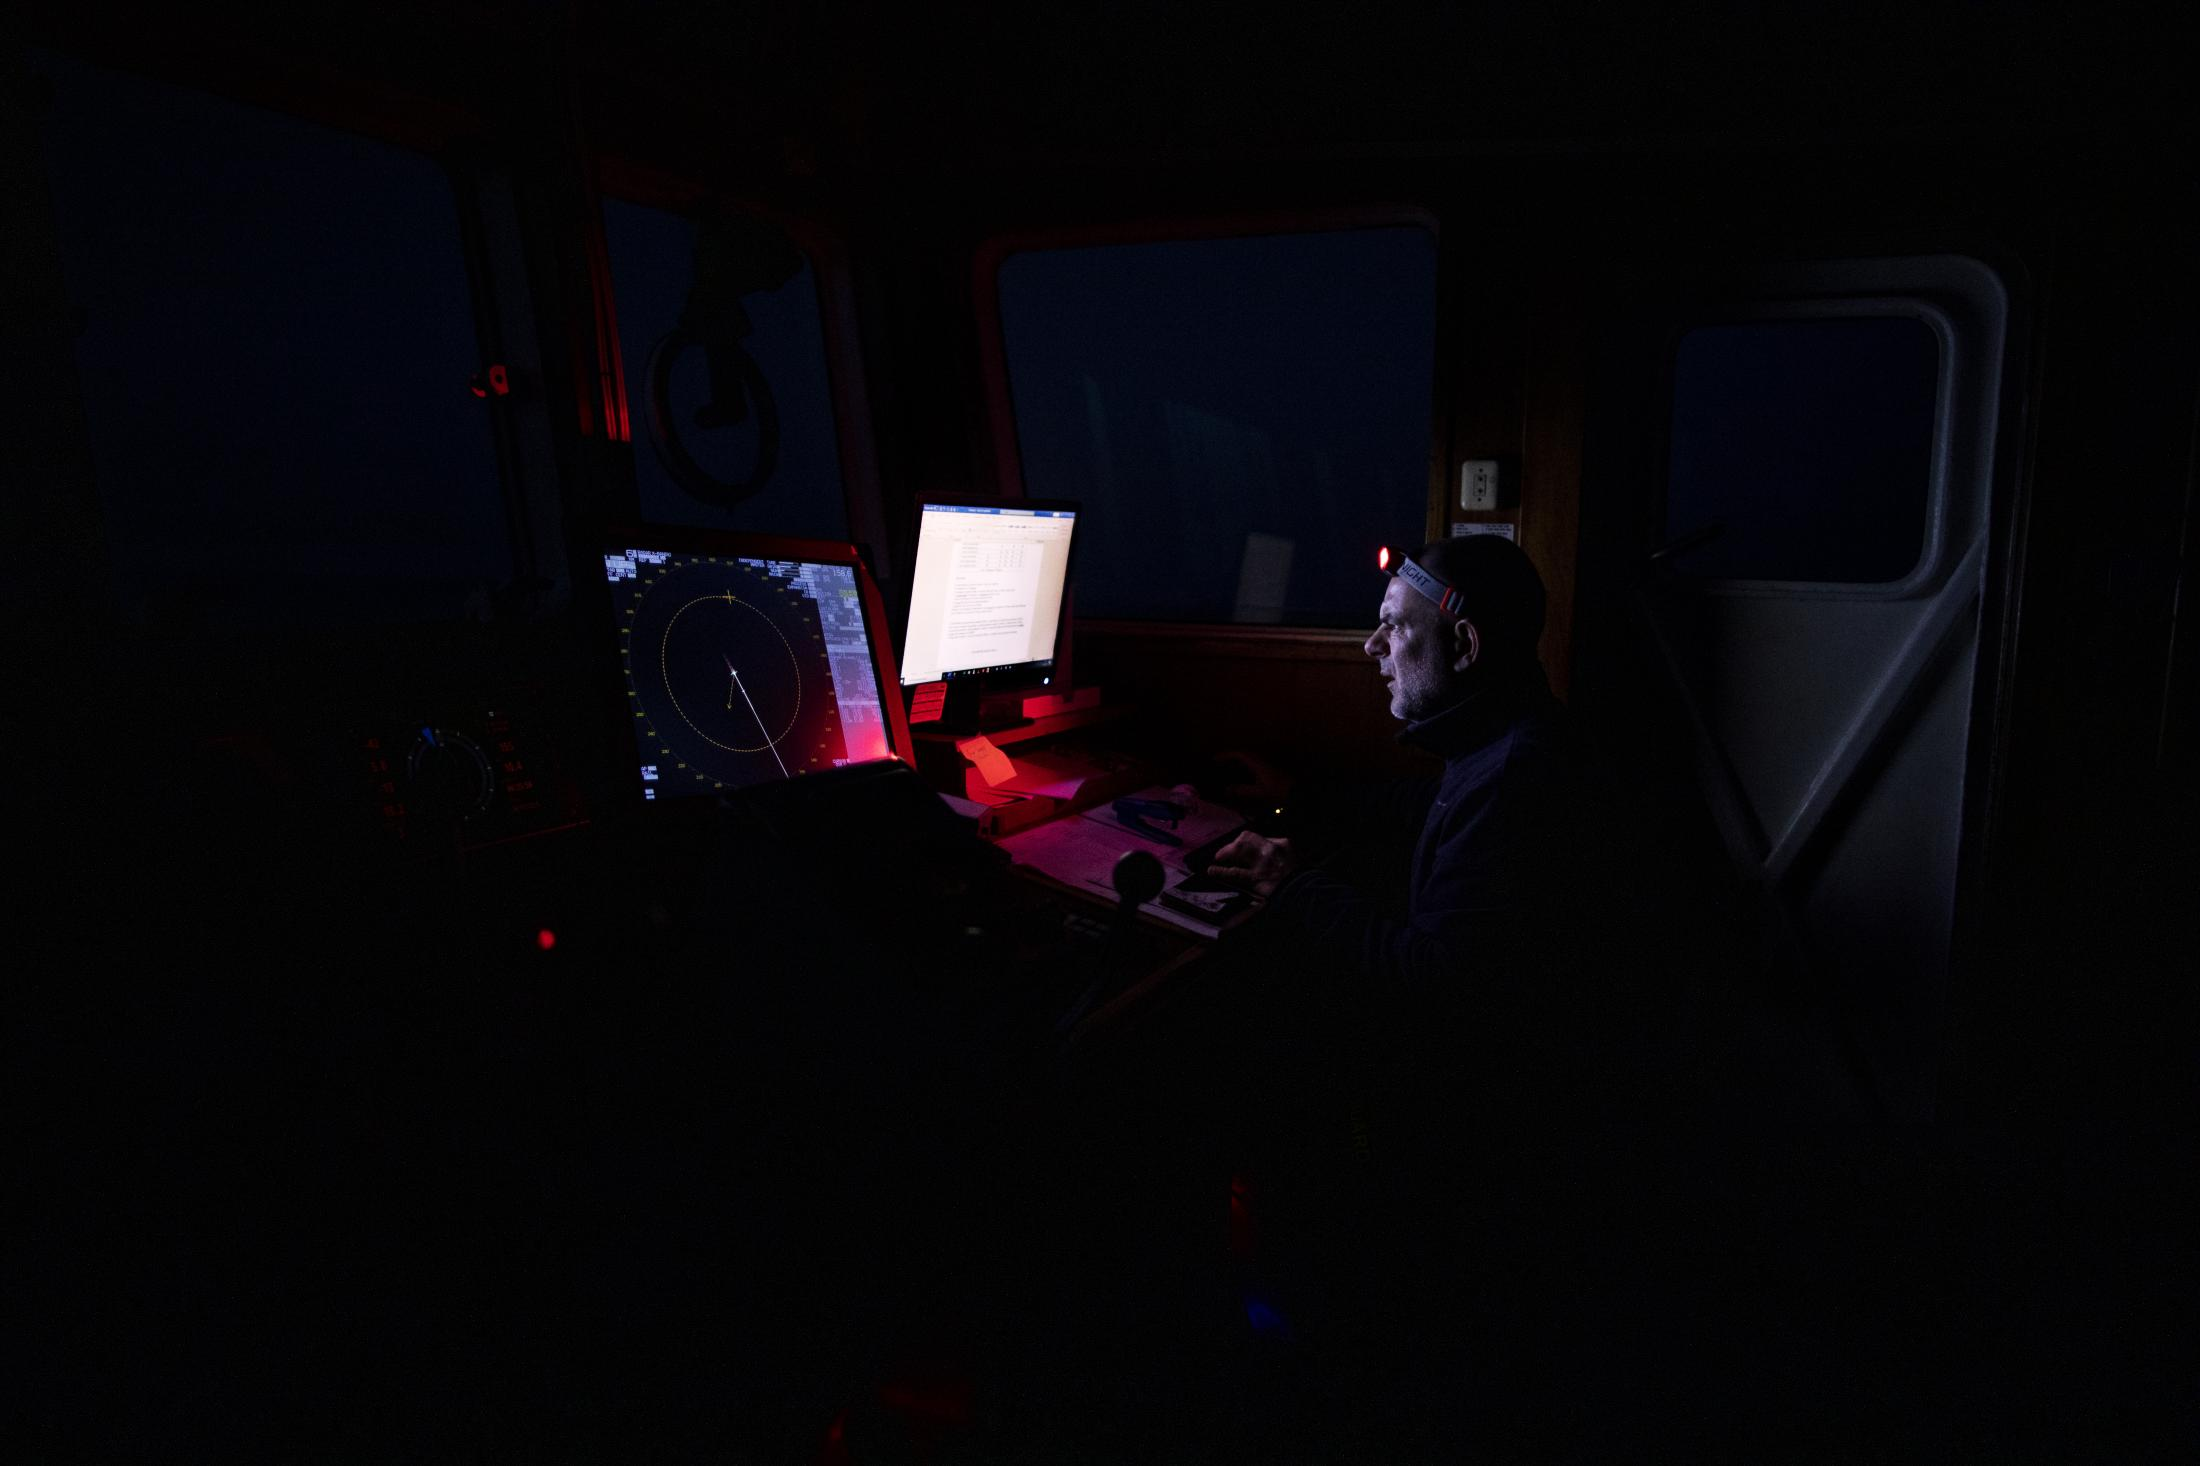 49-year-old 'Erri' from Bilbao, Chief Mate of the Spanish NGO Open Arms during a watch a few hours before dawn analyses the latest data on the ship's position and direction, Saturday Feb.6,2021